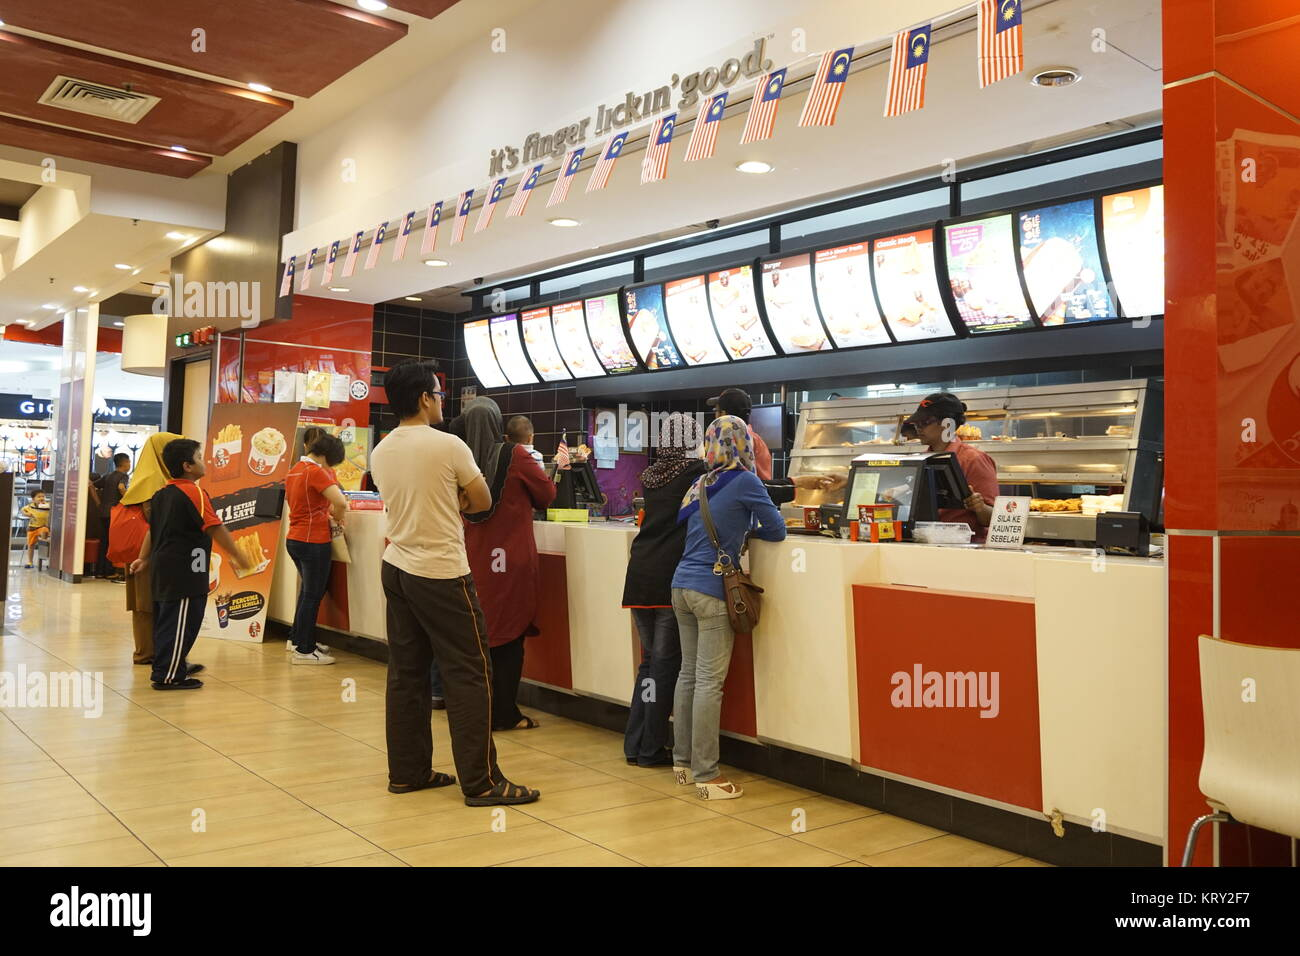 fast food industry in malaysia The impact of religious sensitivity on brand trust, equity and values of fast food industry in malaysia rozita naina mohamed and norzaidi mohd daud.